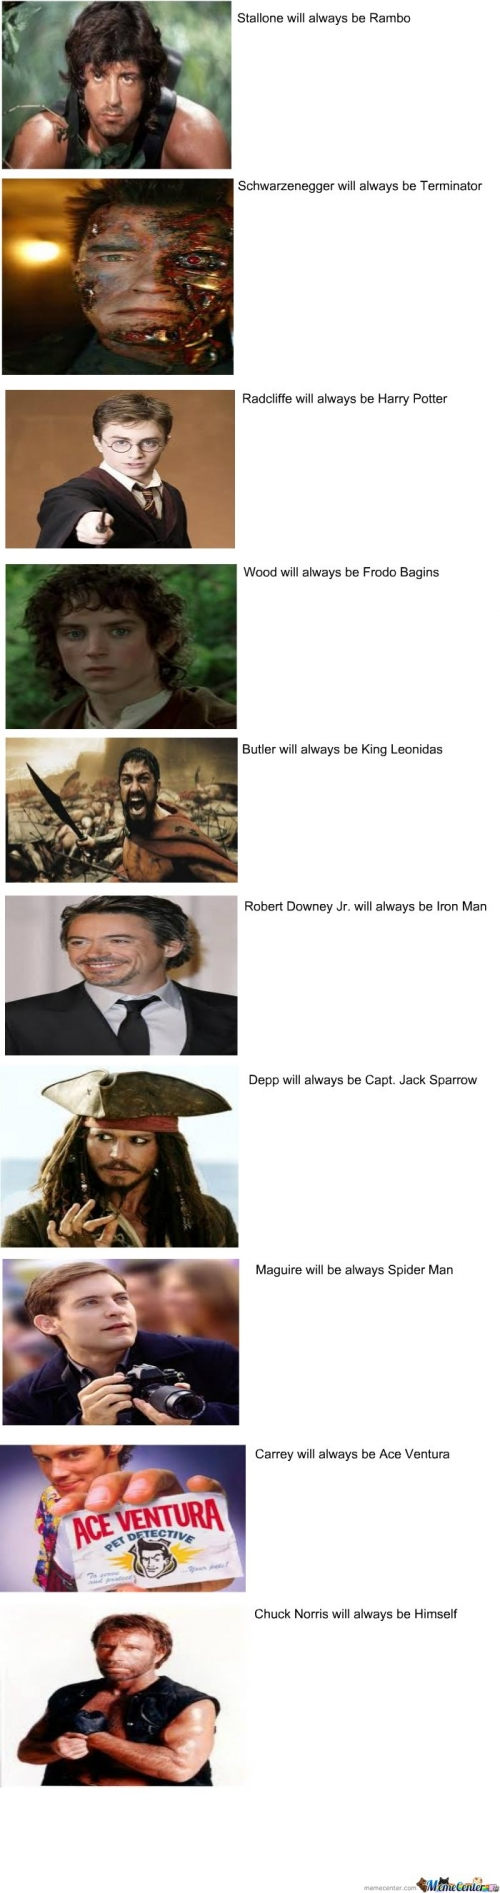 This is why Chuck Norris is special